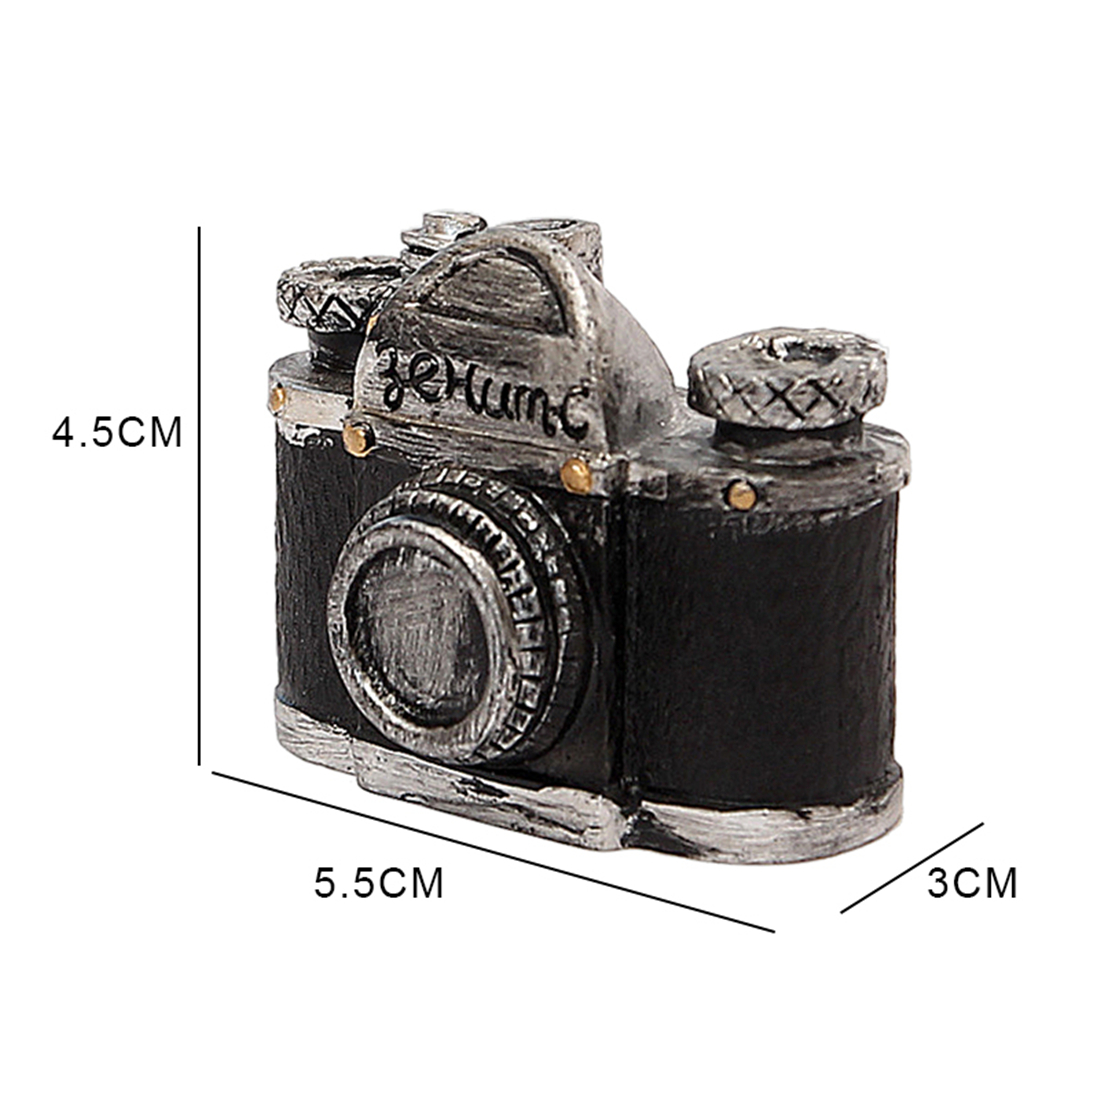 NOCM-Vintage old creative resin mini new camera small ornaments desk jewelry Home decorations childrens gifts shop shooting p